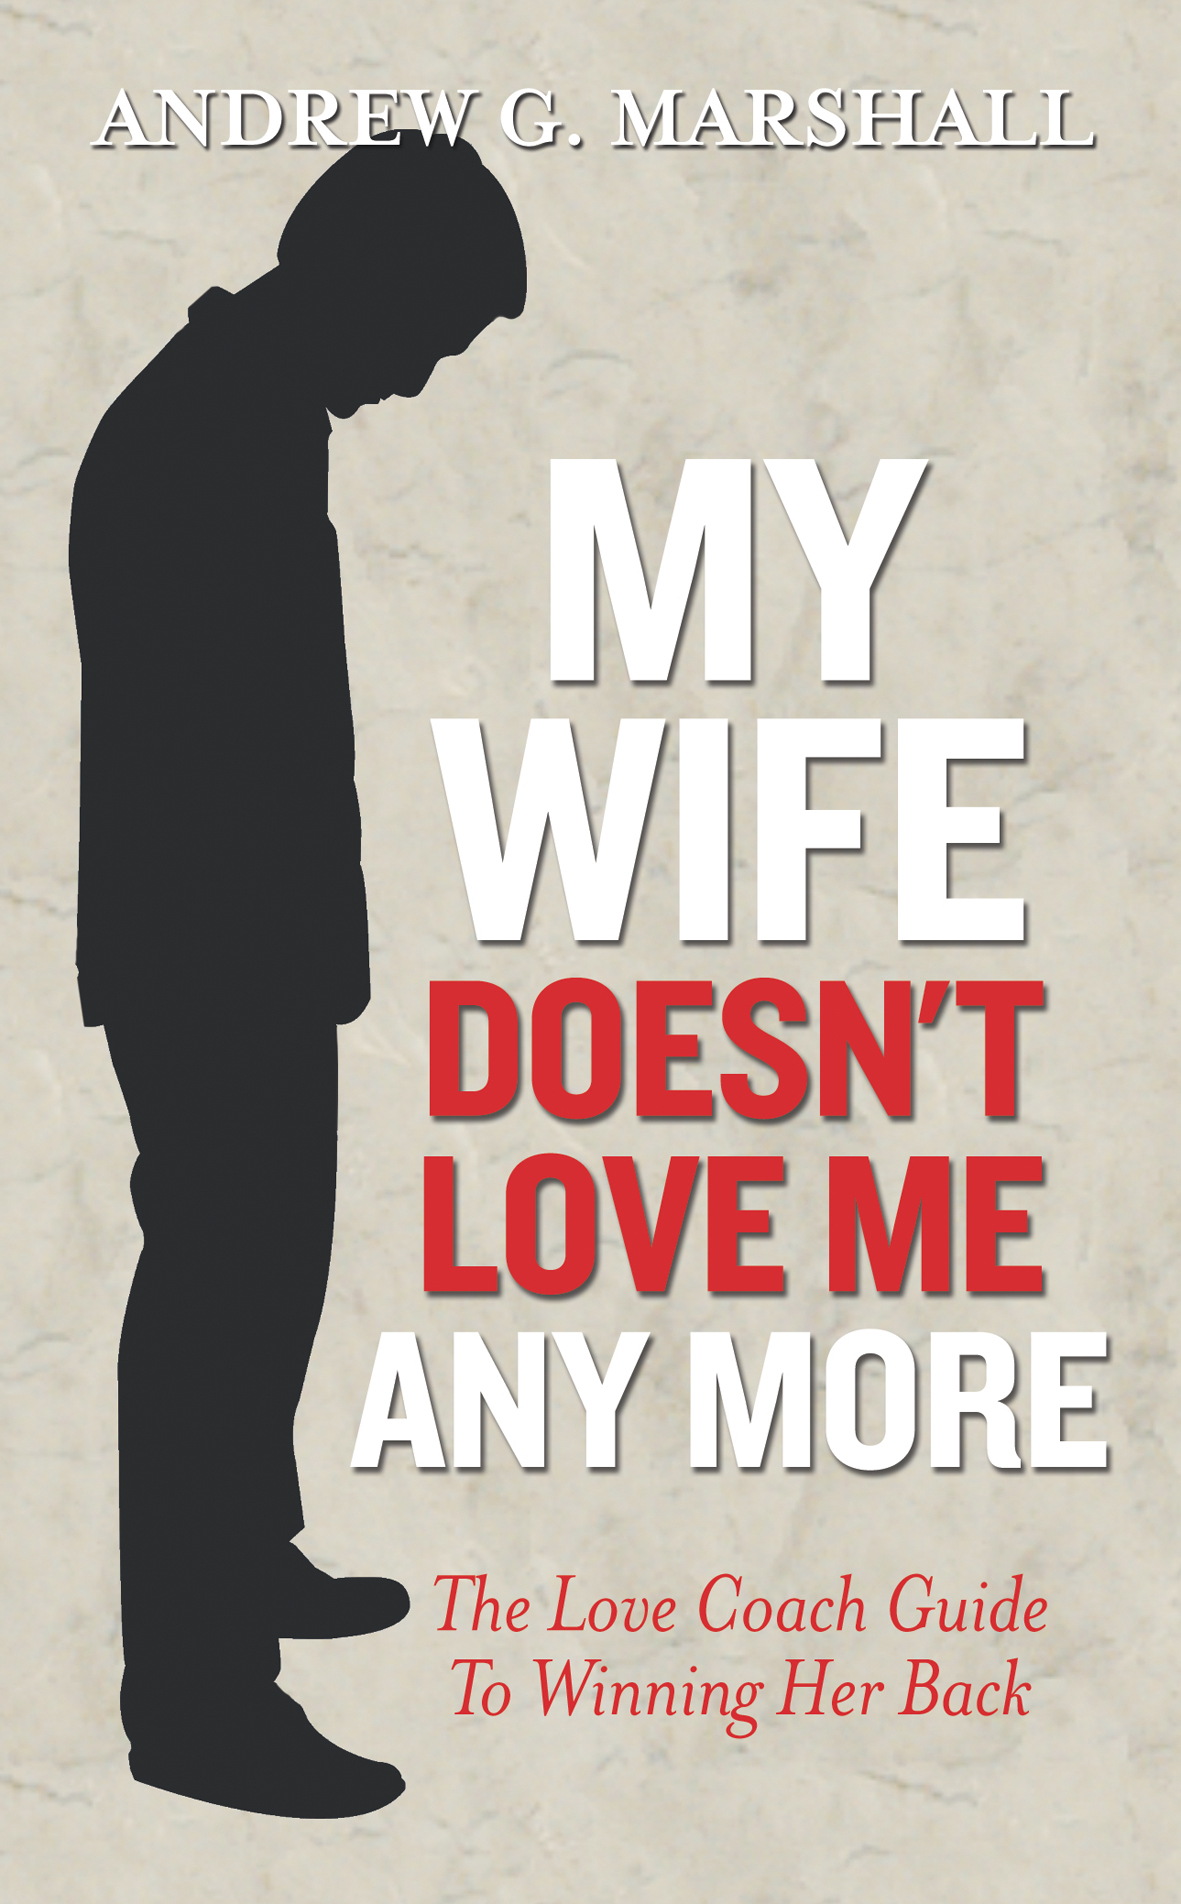 My Wife Doesn't Love Me Any More By: Andrew G Marshall